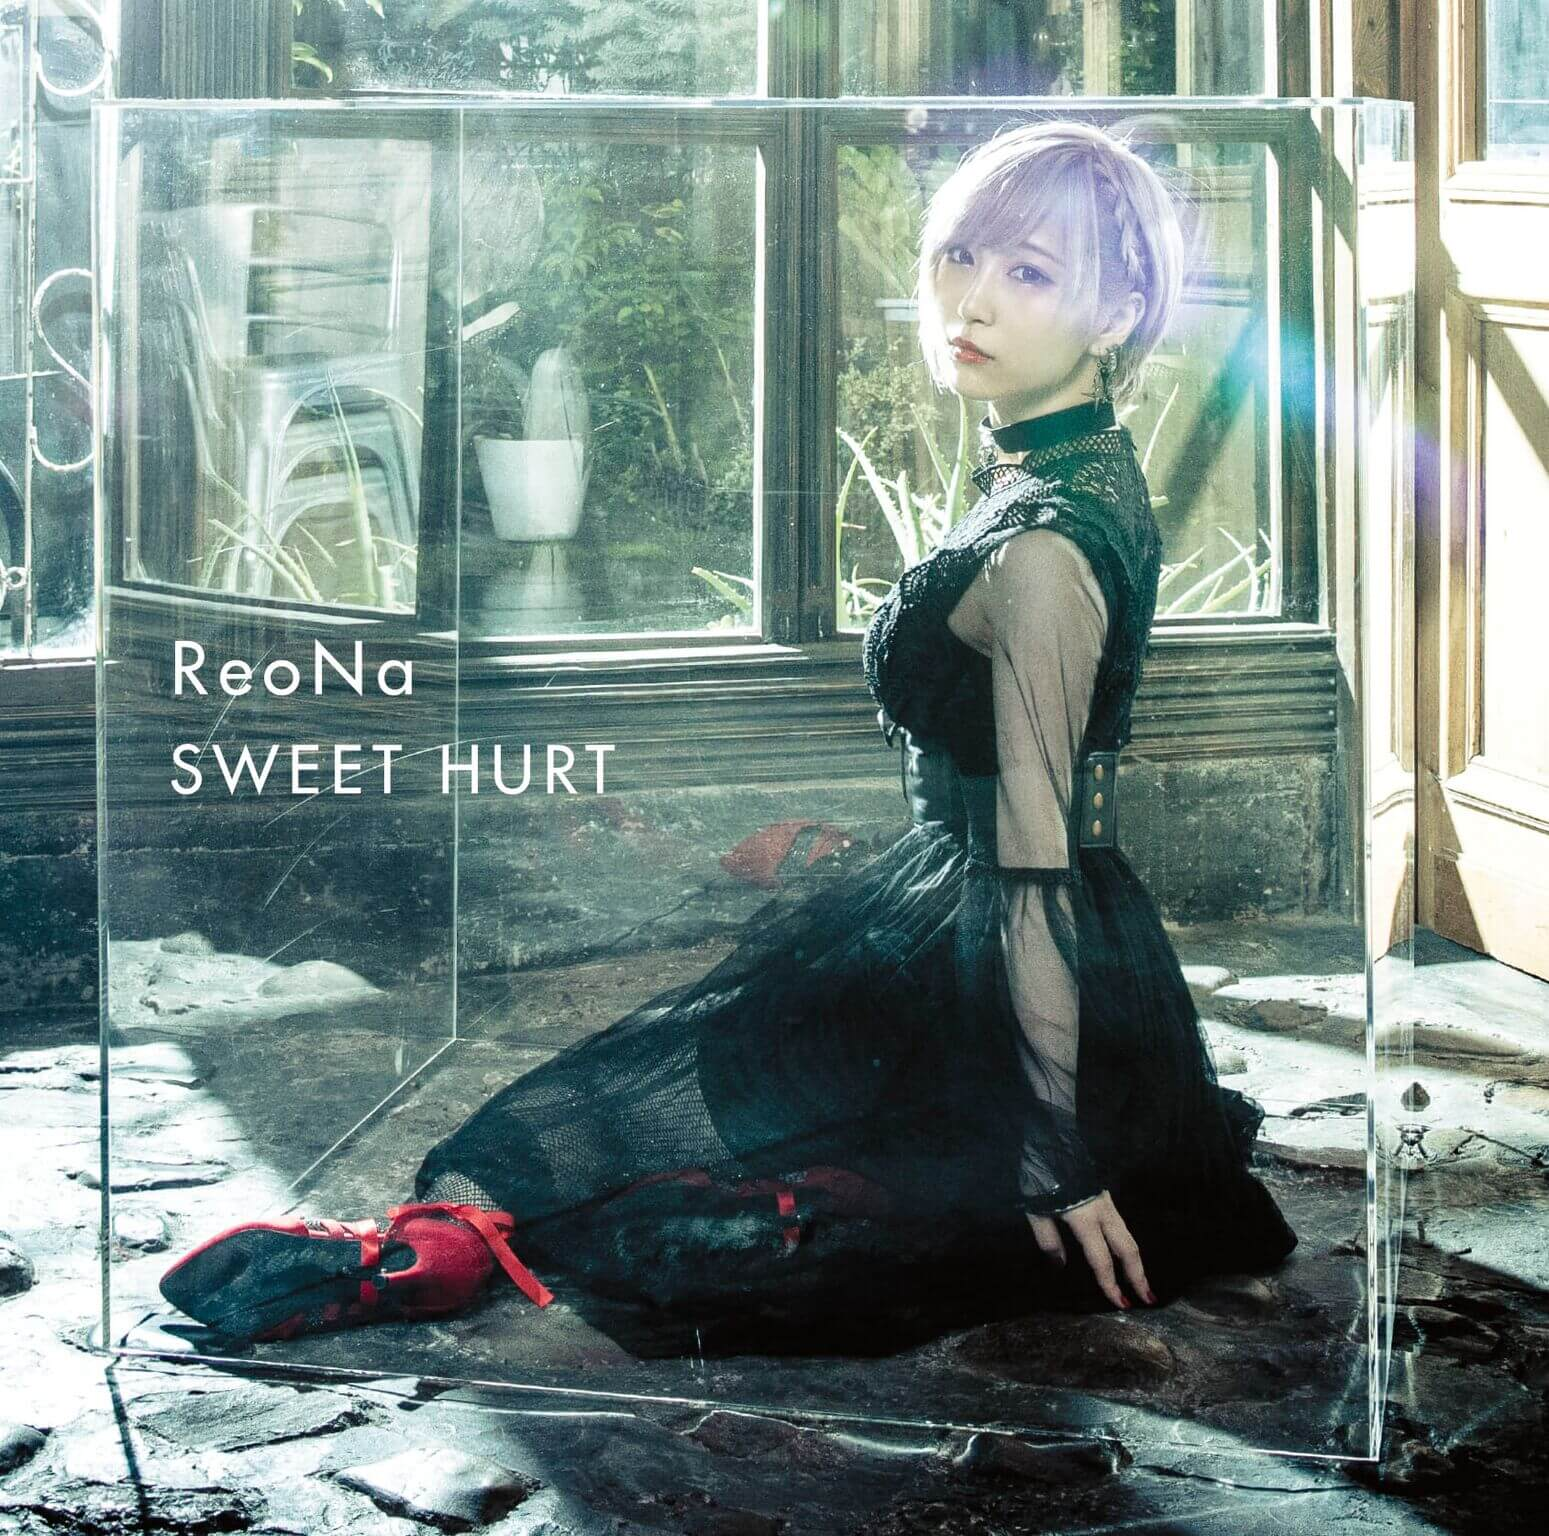 reona-sweet-hurt-2